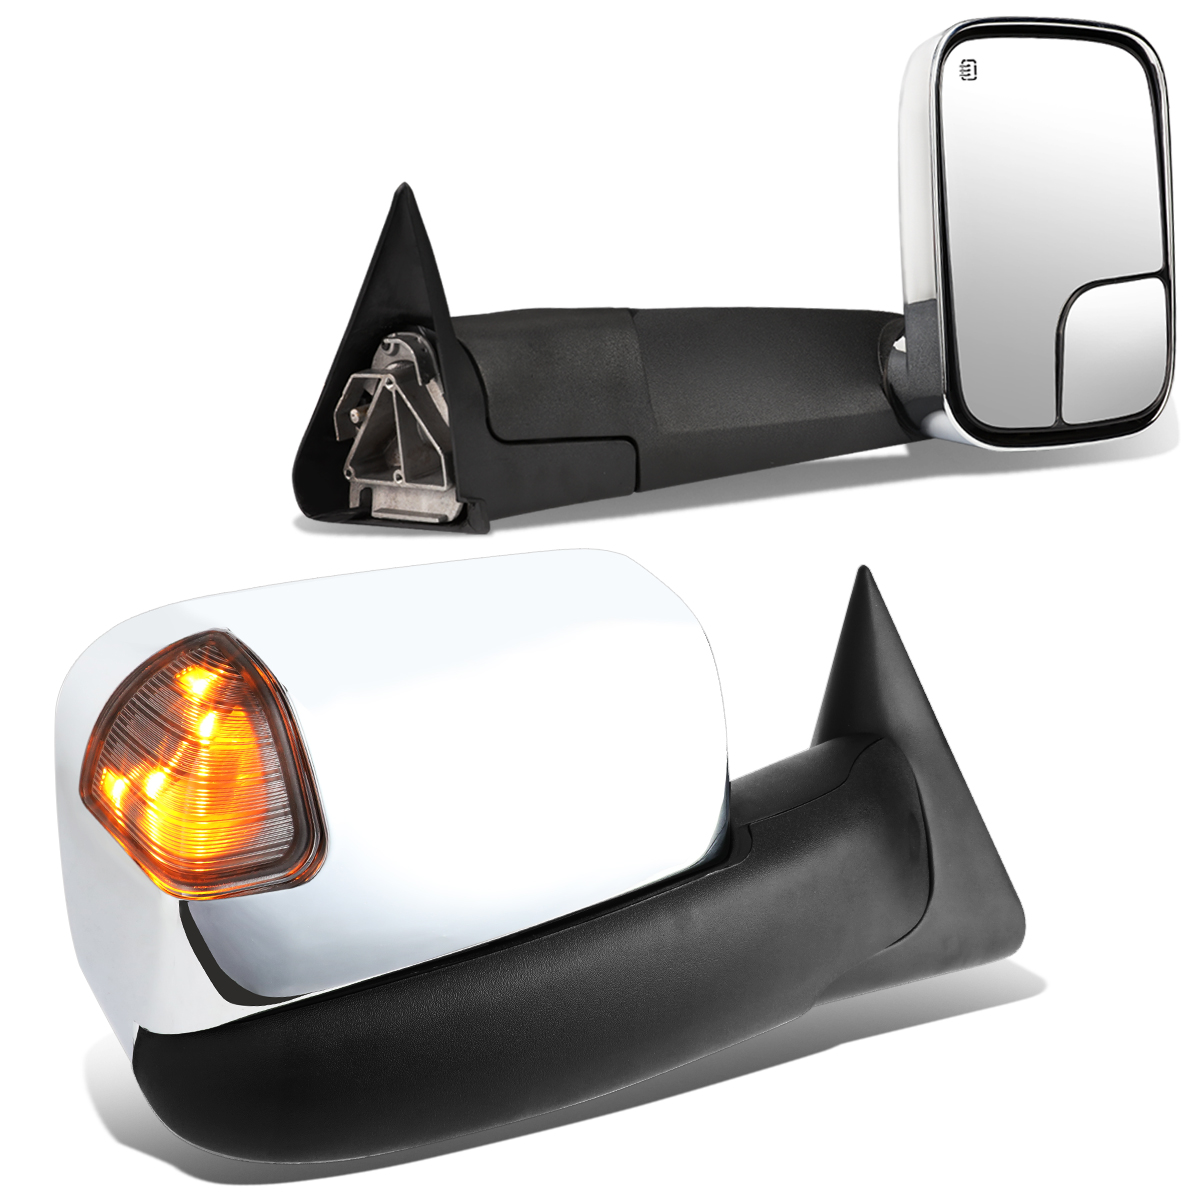 Power Heated Tow Mirrors w//Turn Signal Light 1998-2002 Dodge Ram 2500 3500 AUTOSAVER88 Towing Mirrors Compatible with 1998-2001 Dodge Ram 1500